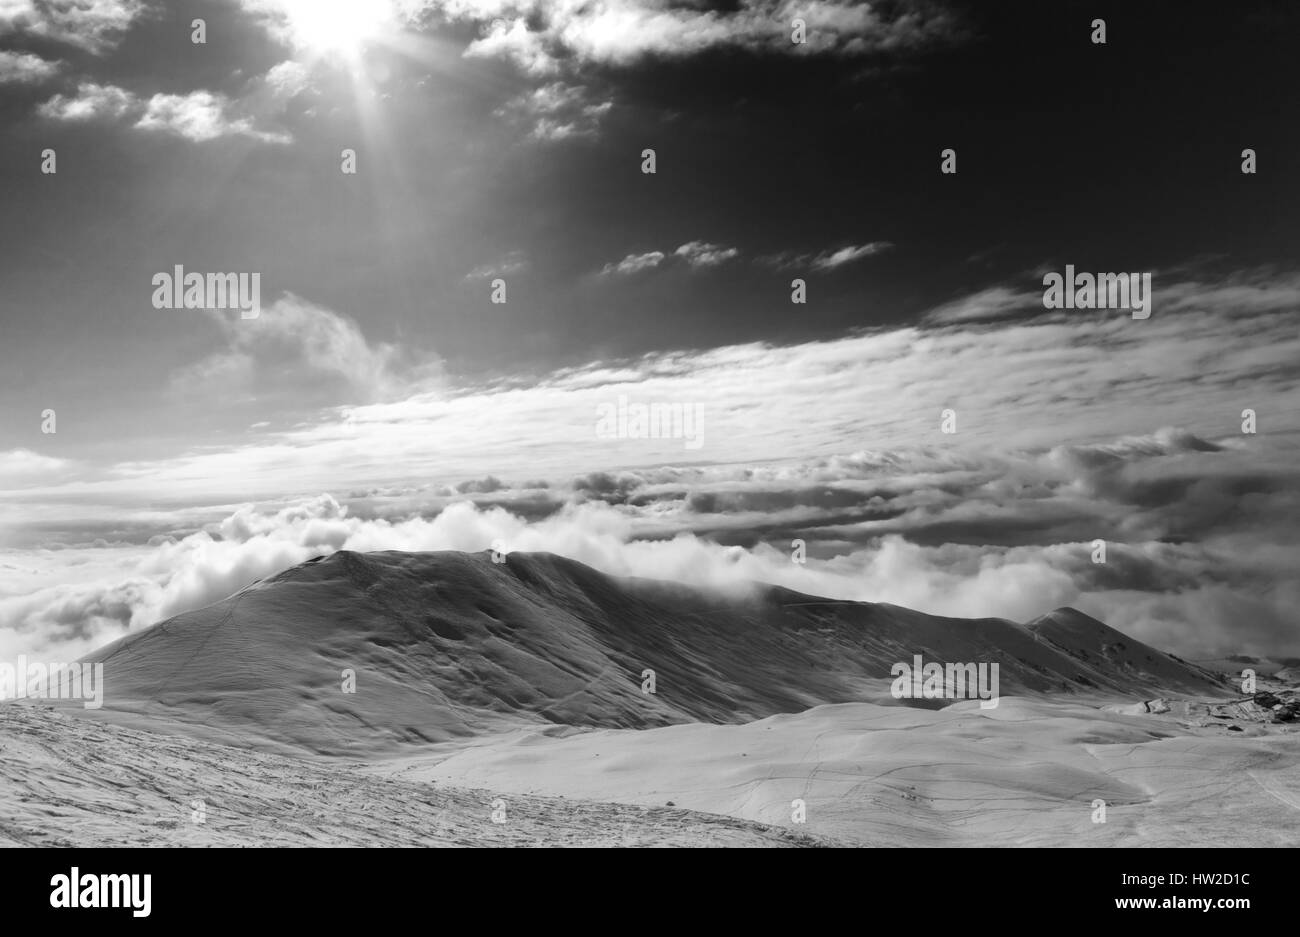 Black and white view on off-piste slope in clouds and sky with sun. Caucasus Mountains, Georgia, region Gudauri. - Stock Image